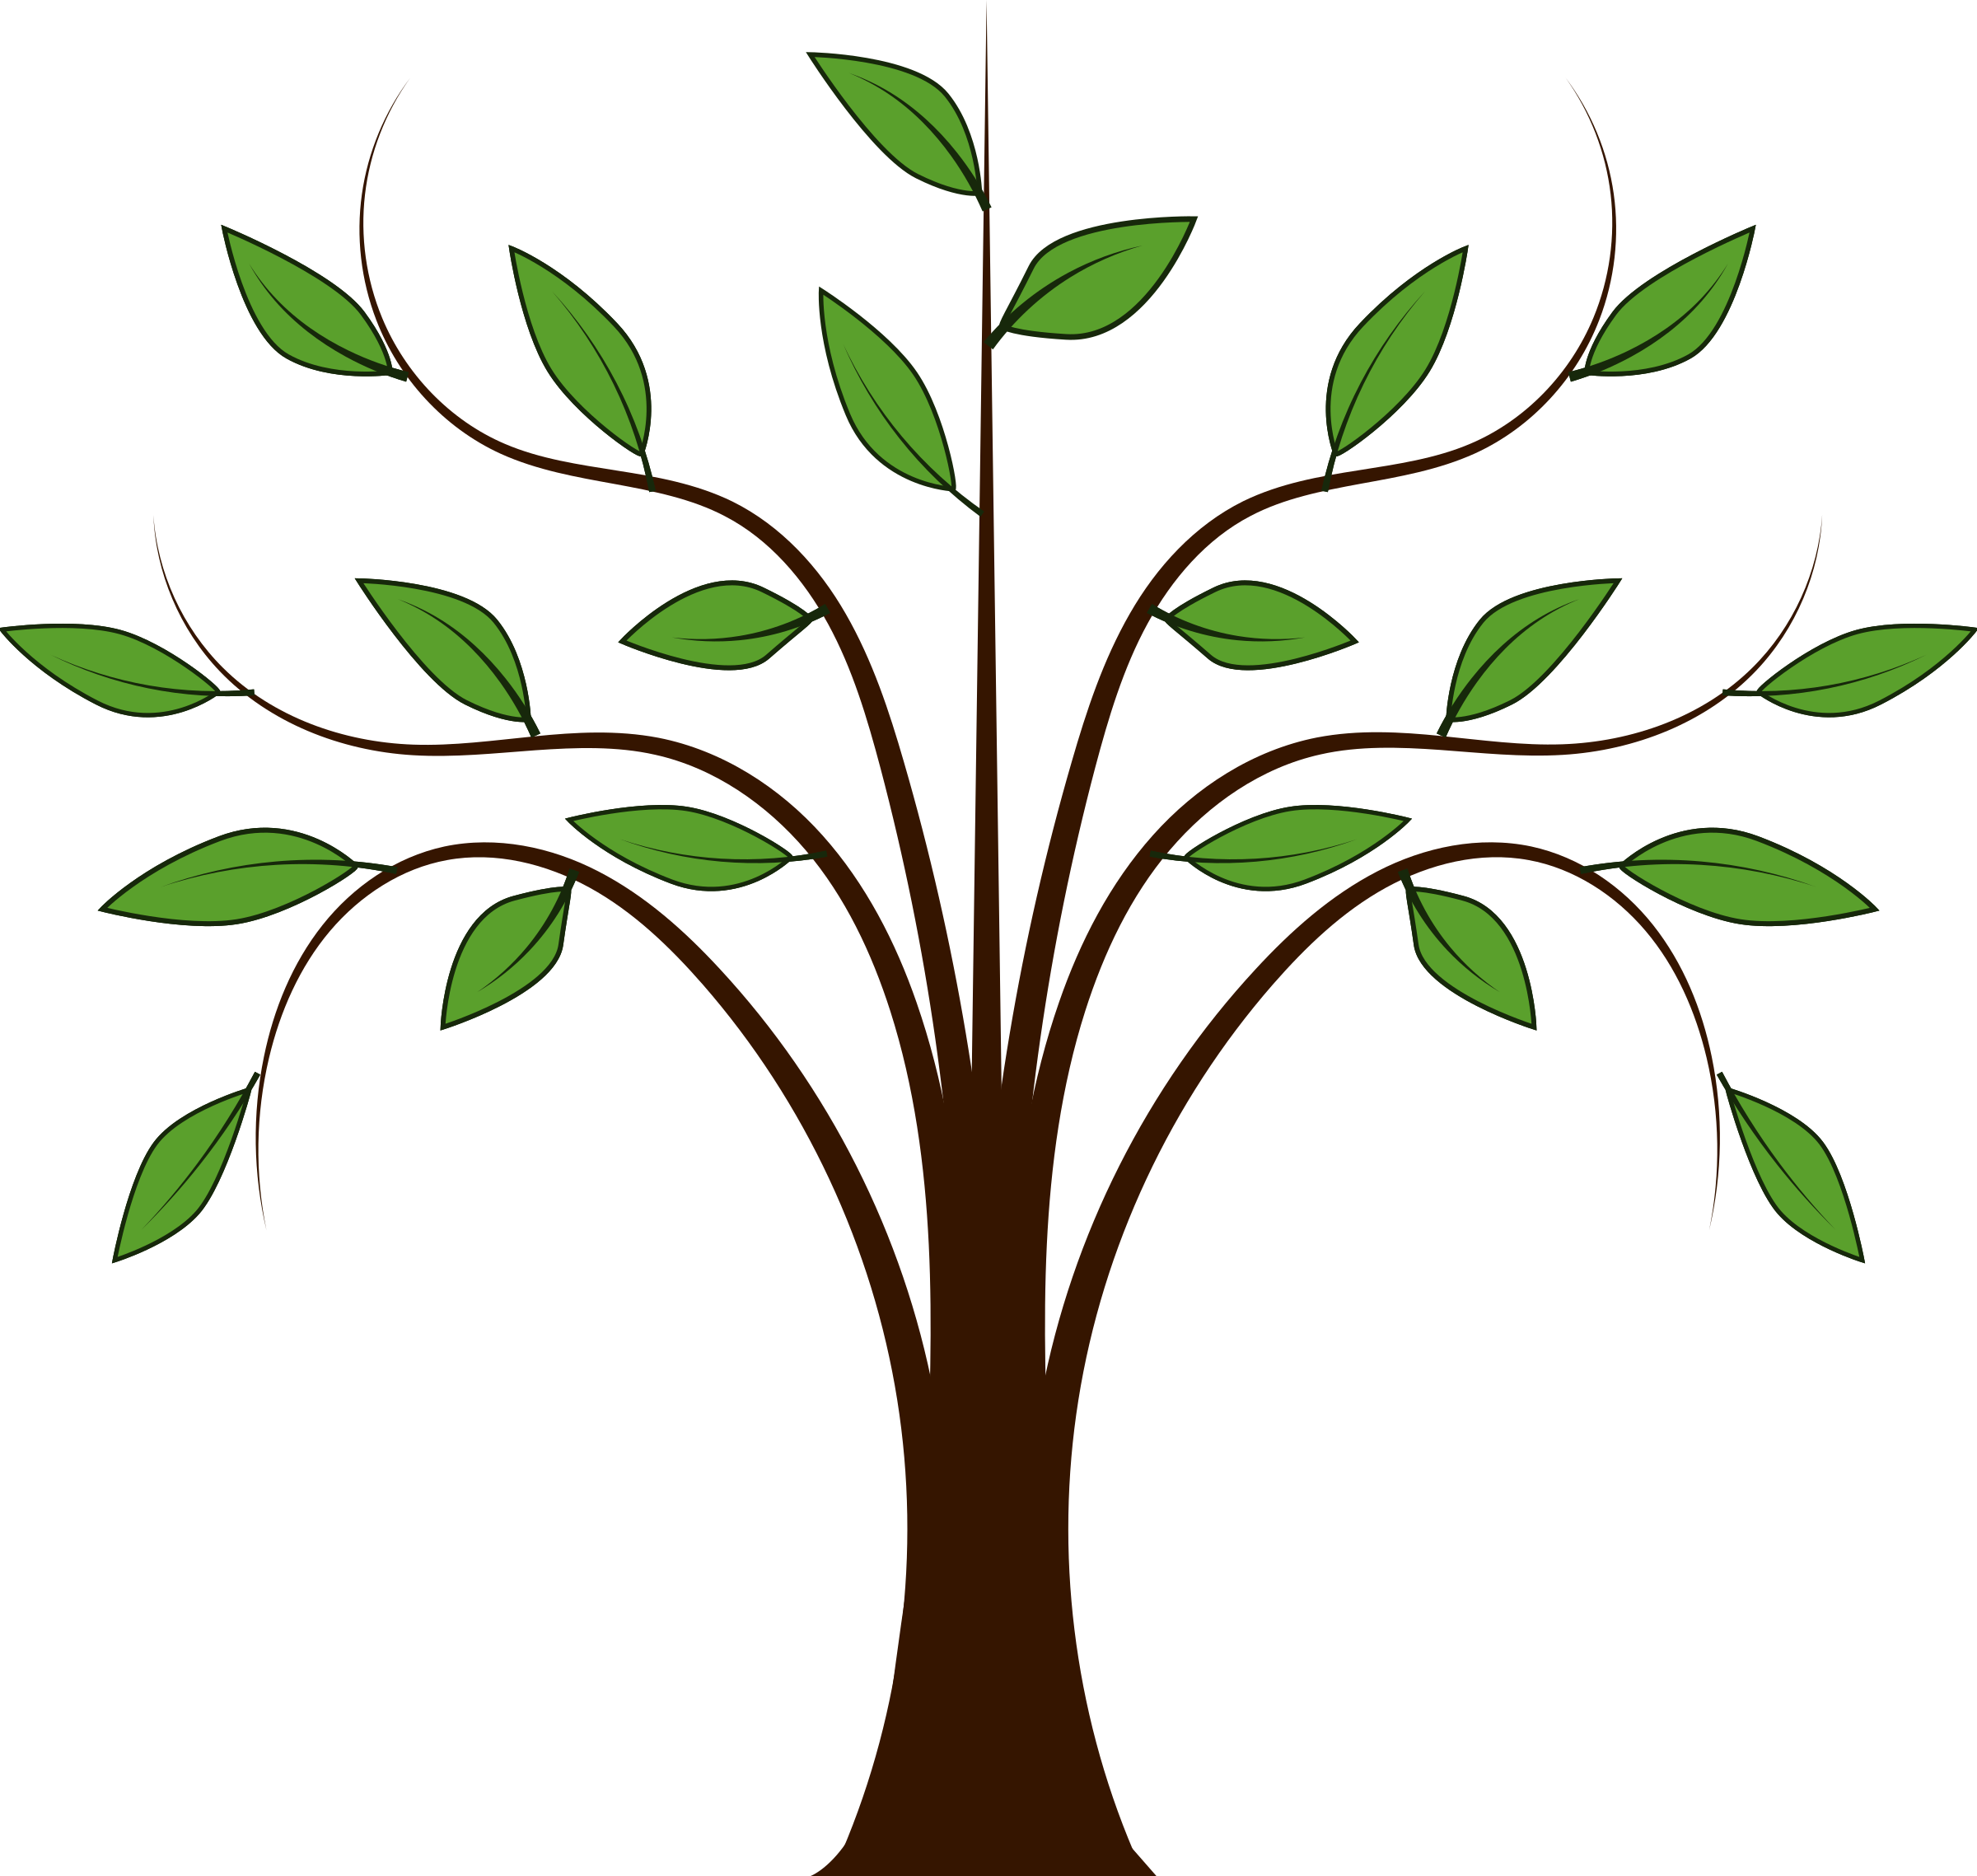 Vines clipart olive. Tree animated group whispy